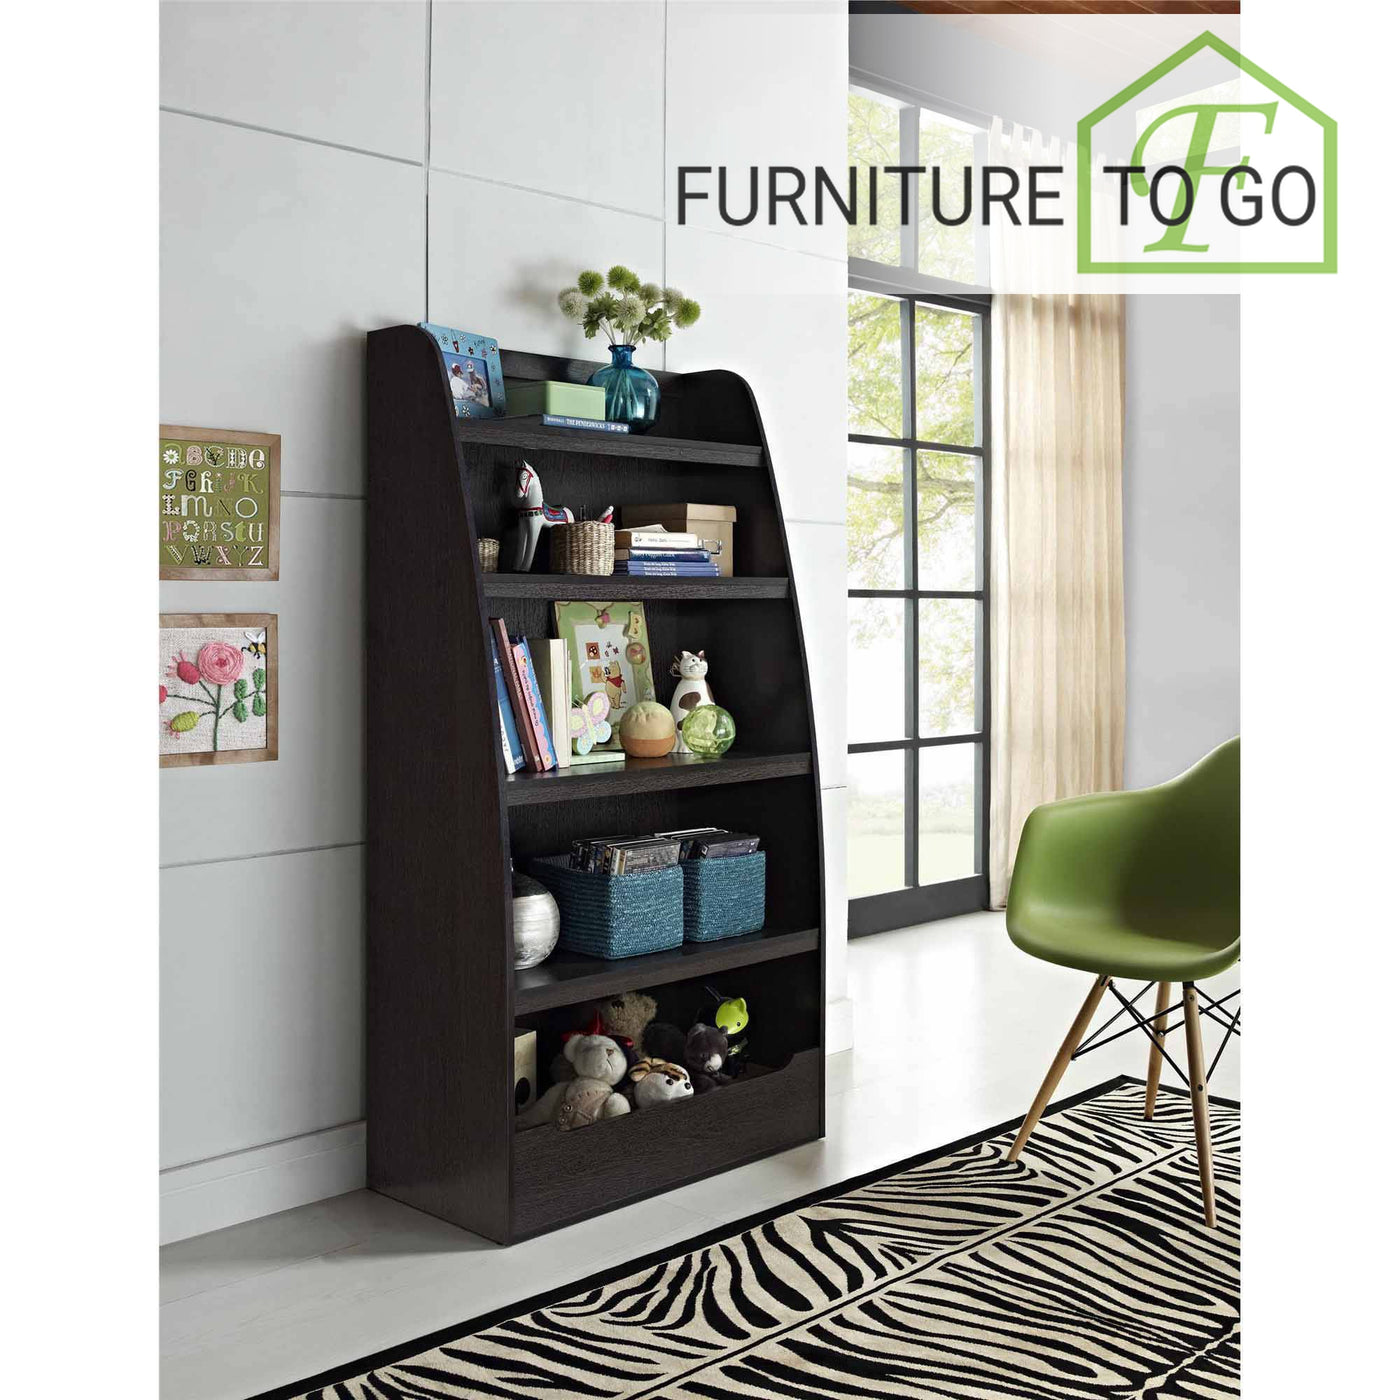 Clearance Furniture In Dallas 6000 Espresso Kids Bookshelf